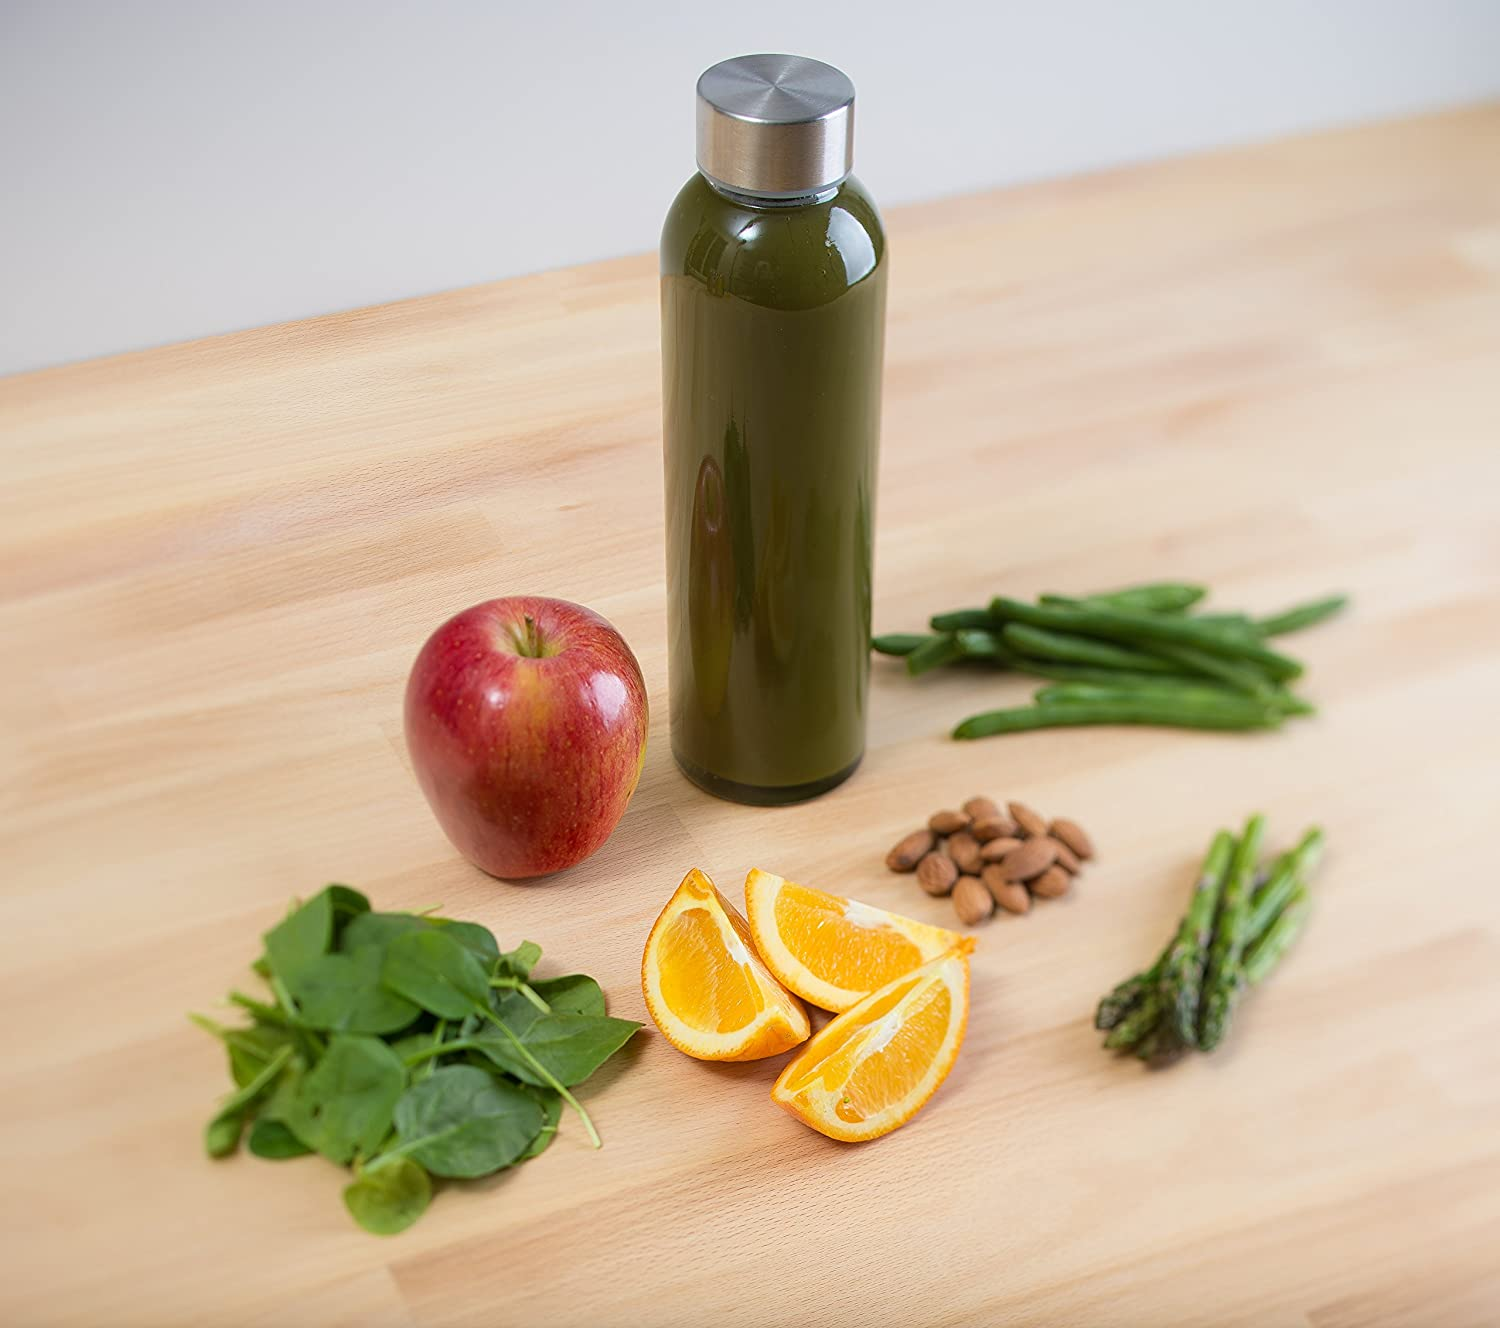 7 Best Container For Storing Fresh Juice – Guide and Review 1